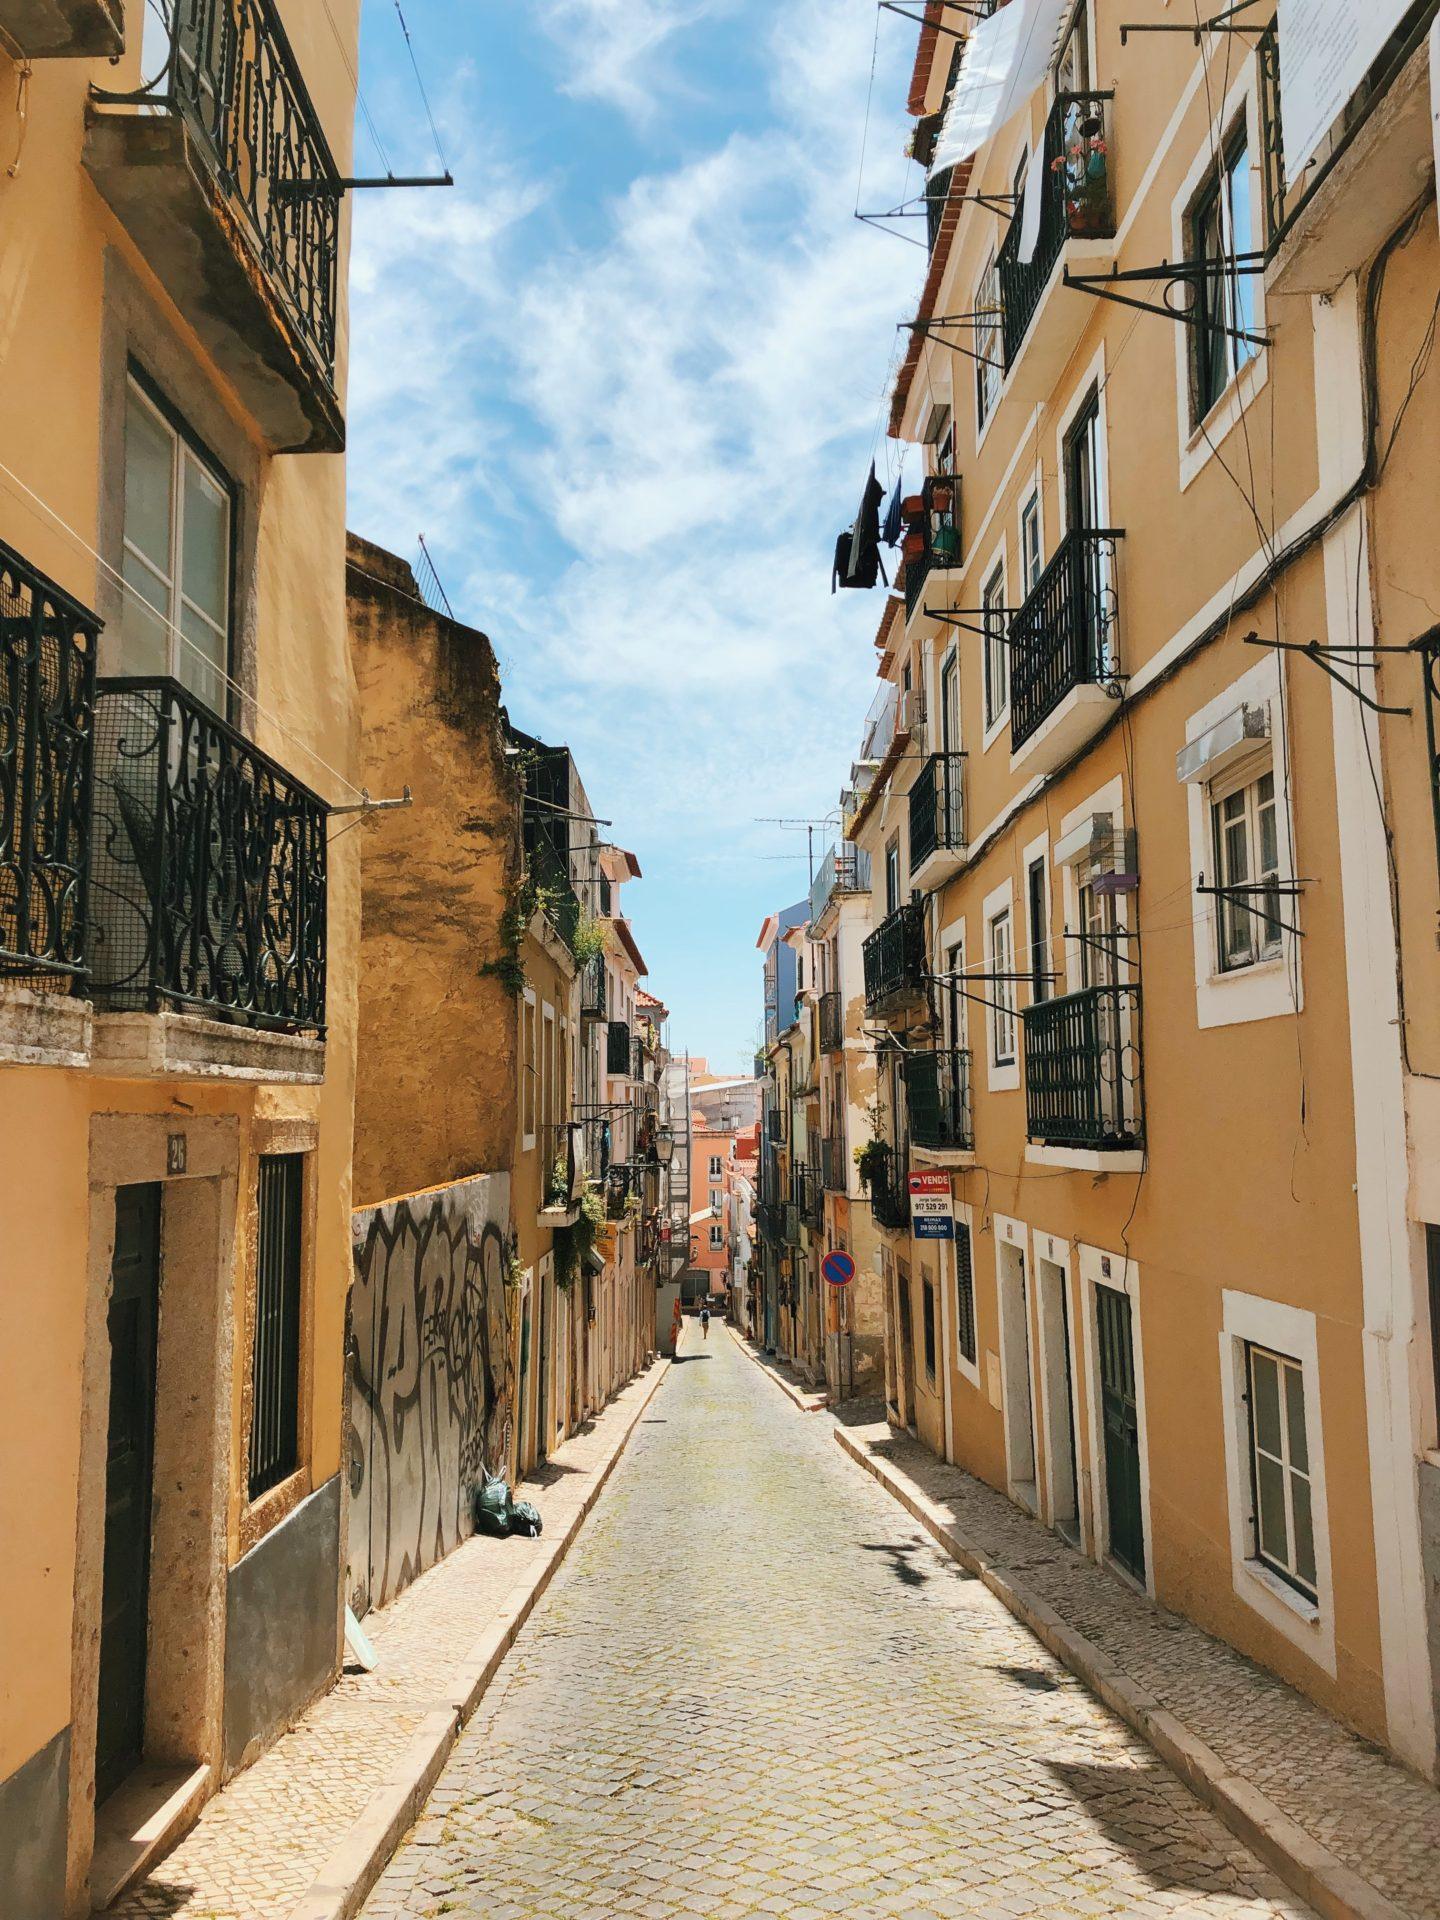 Charming and quiet side streets and alleyways as we explored Lisbon Portugal